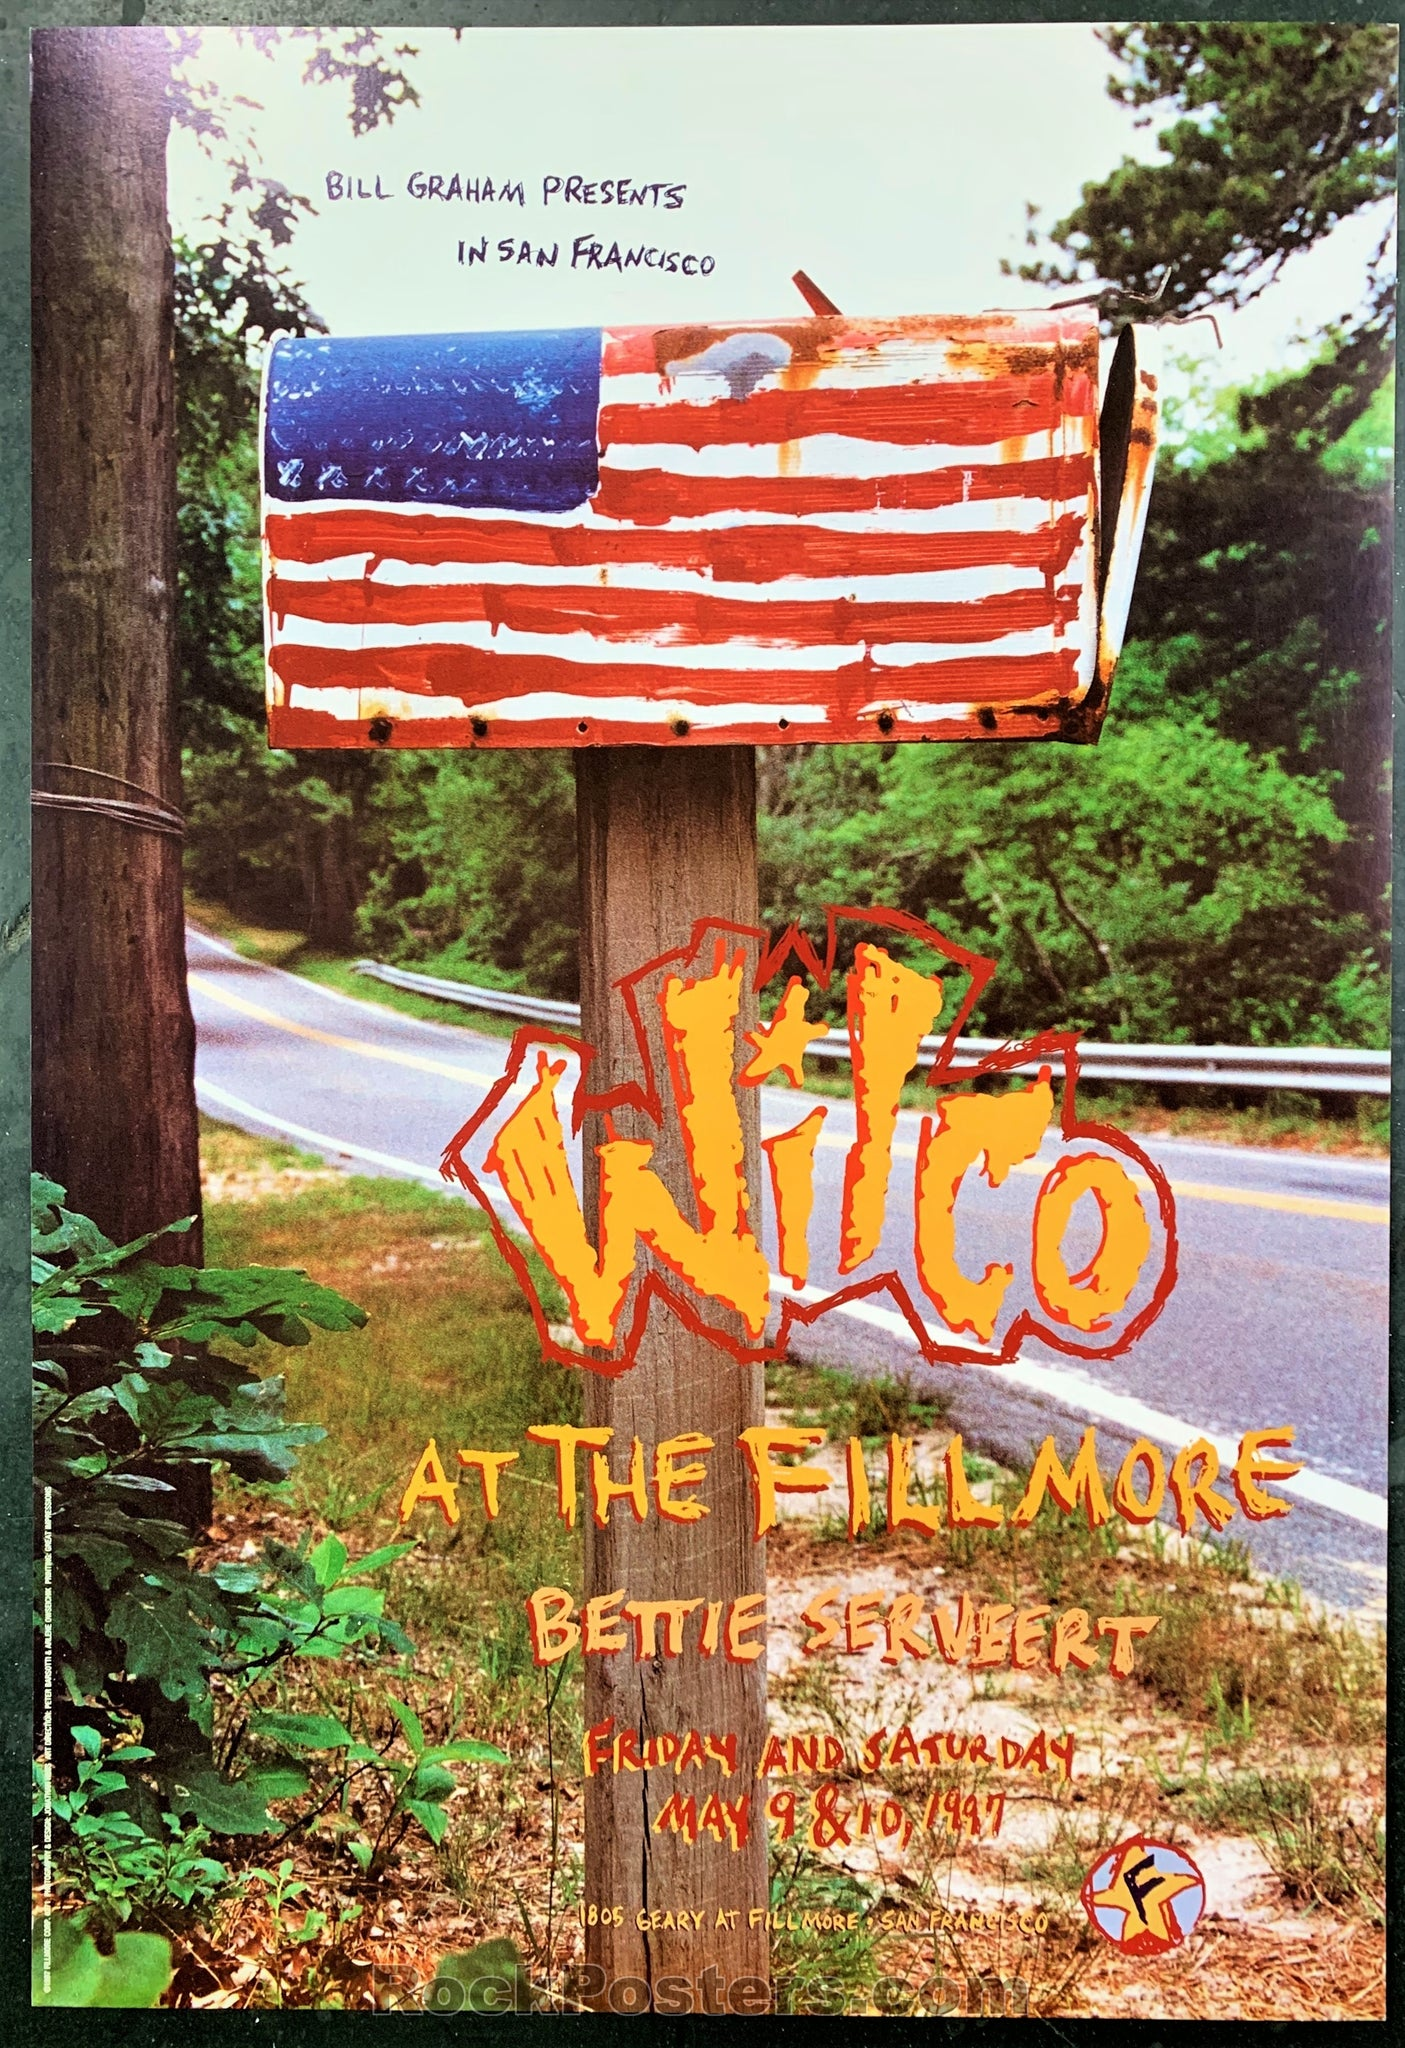 NF-271 - Wilco Poster - Fillmore Auditorium - Condition - Near Mint Minus